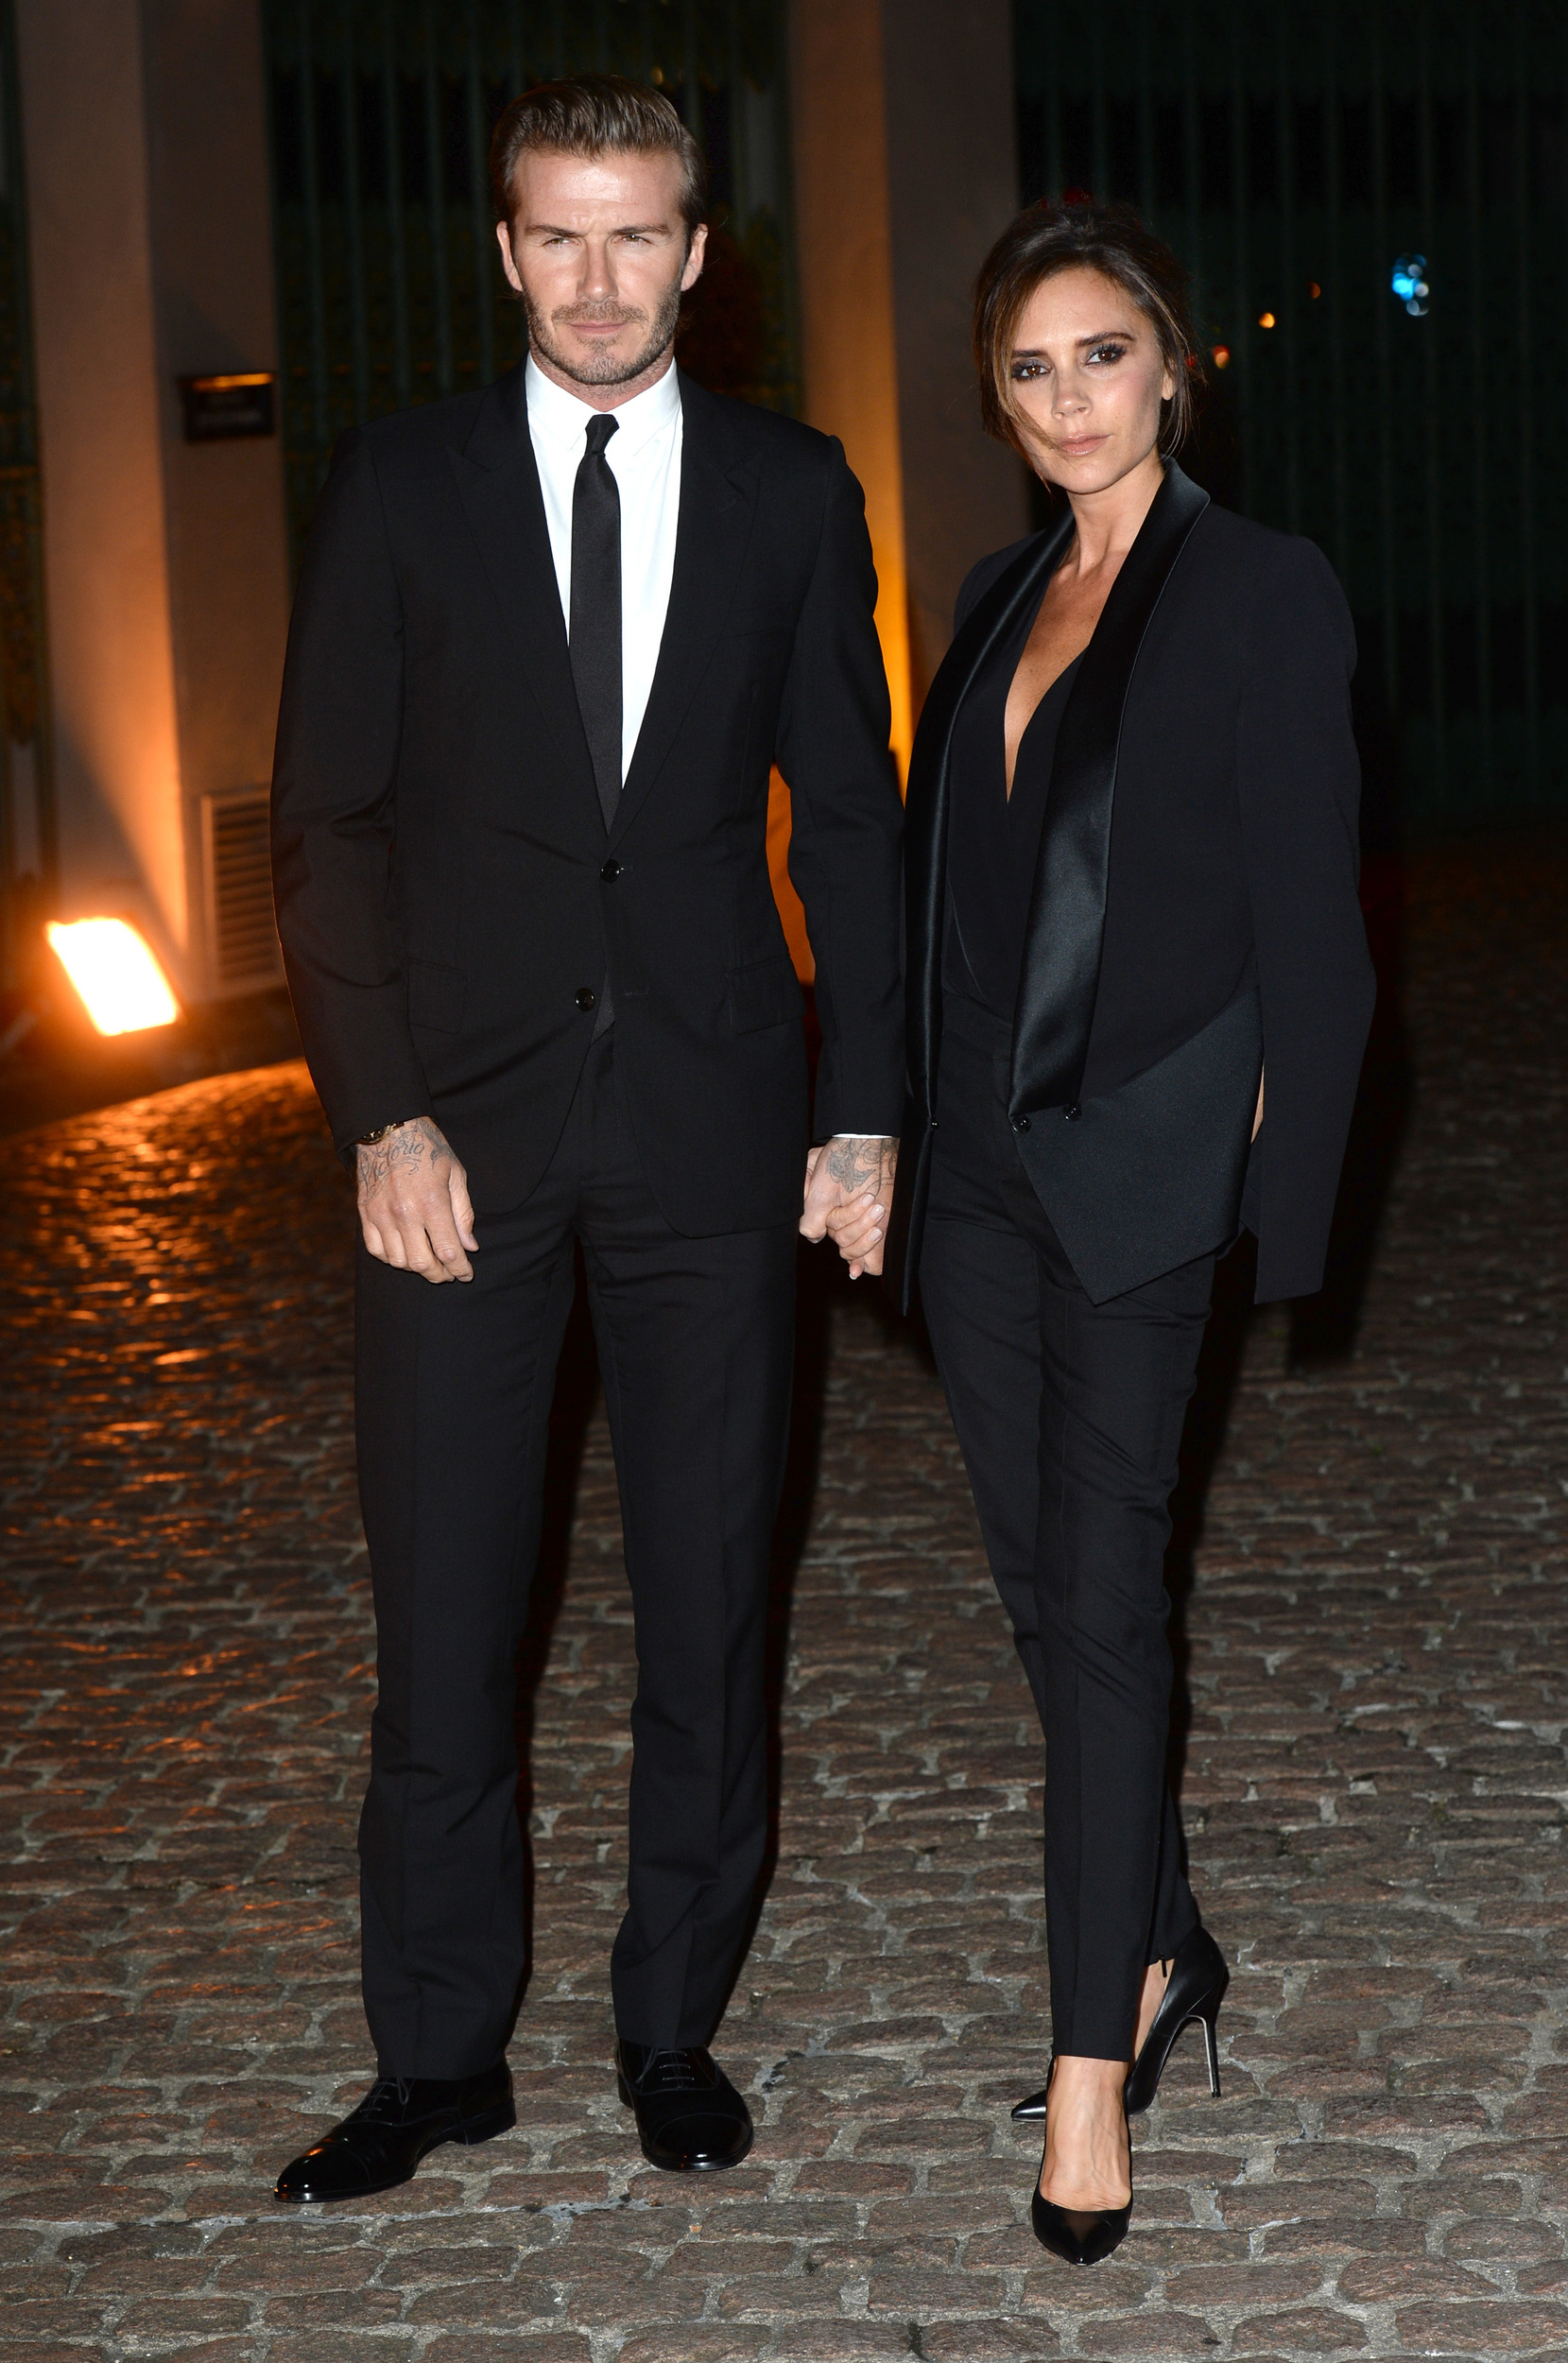 Victoria Beckham is not impressed with David's beard ...